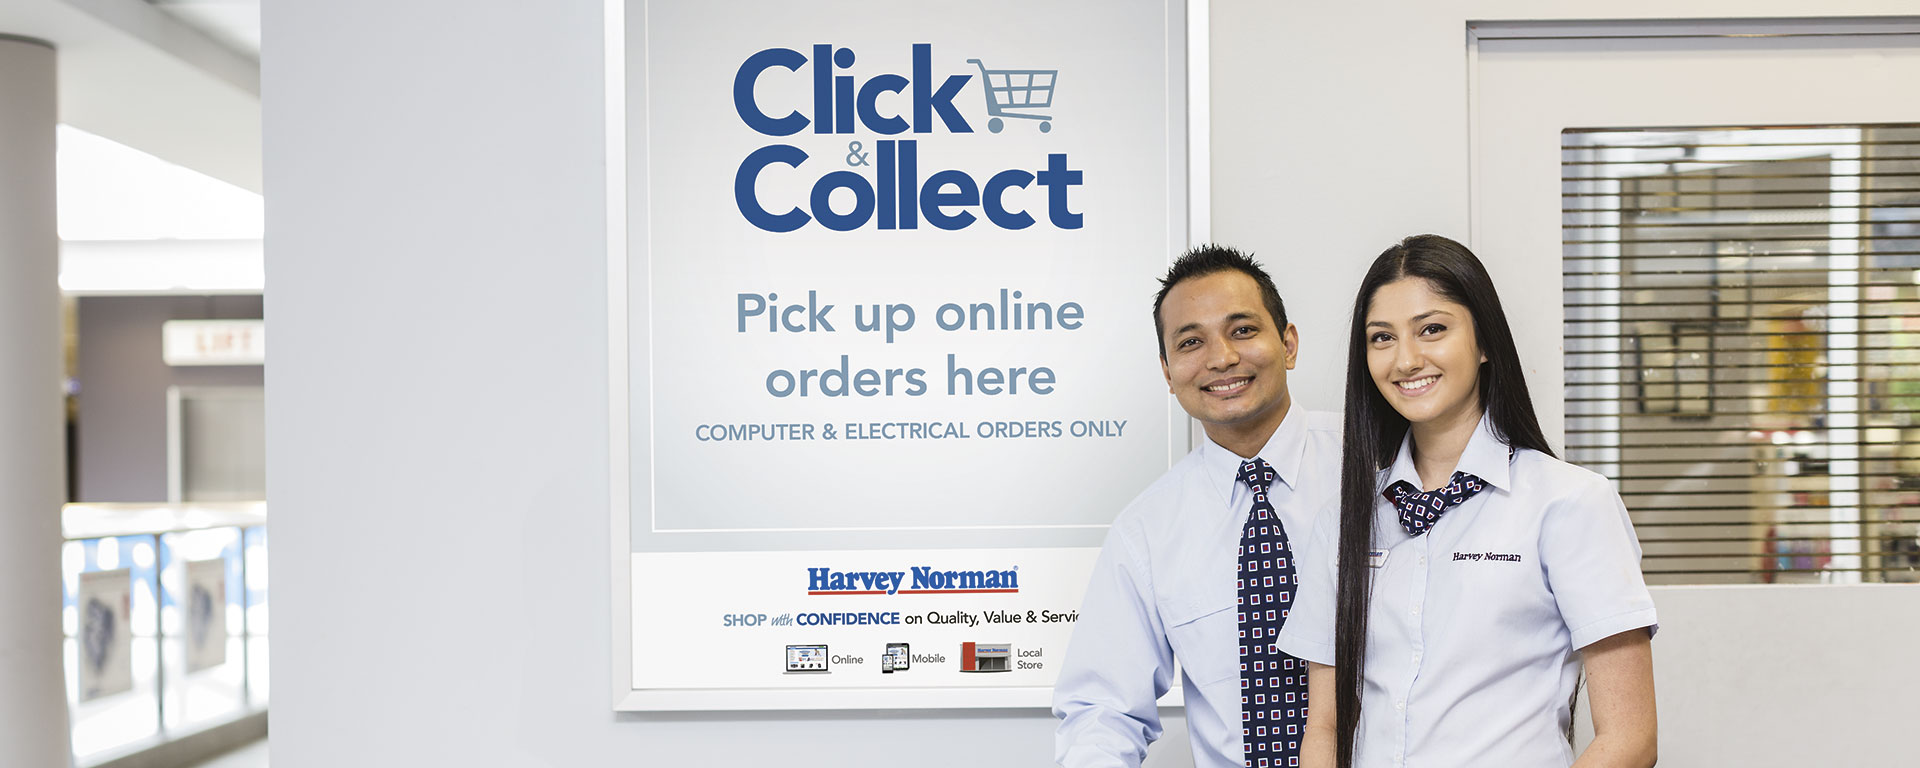 HNAU_Click-and-Collect